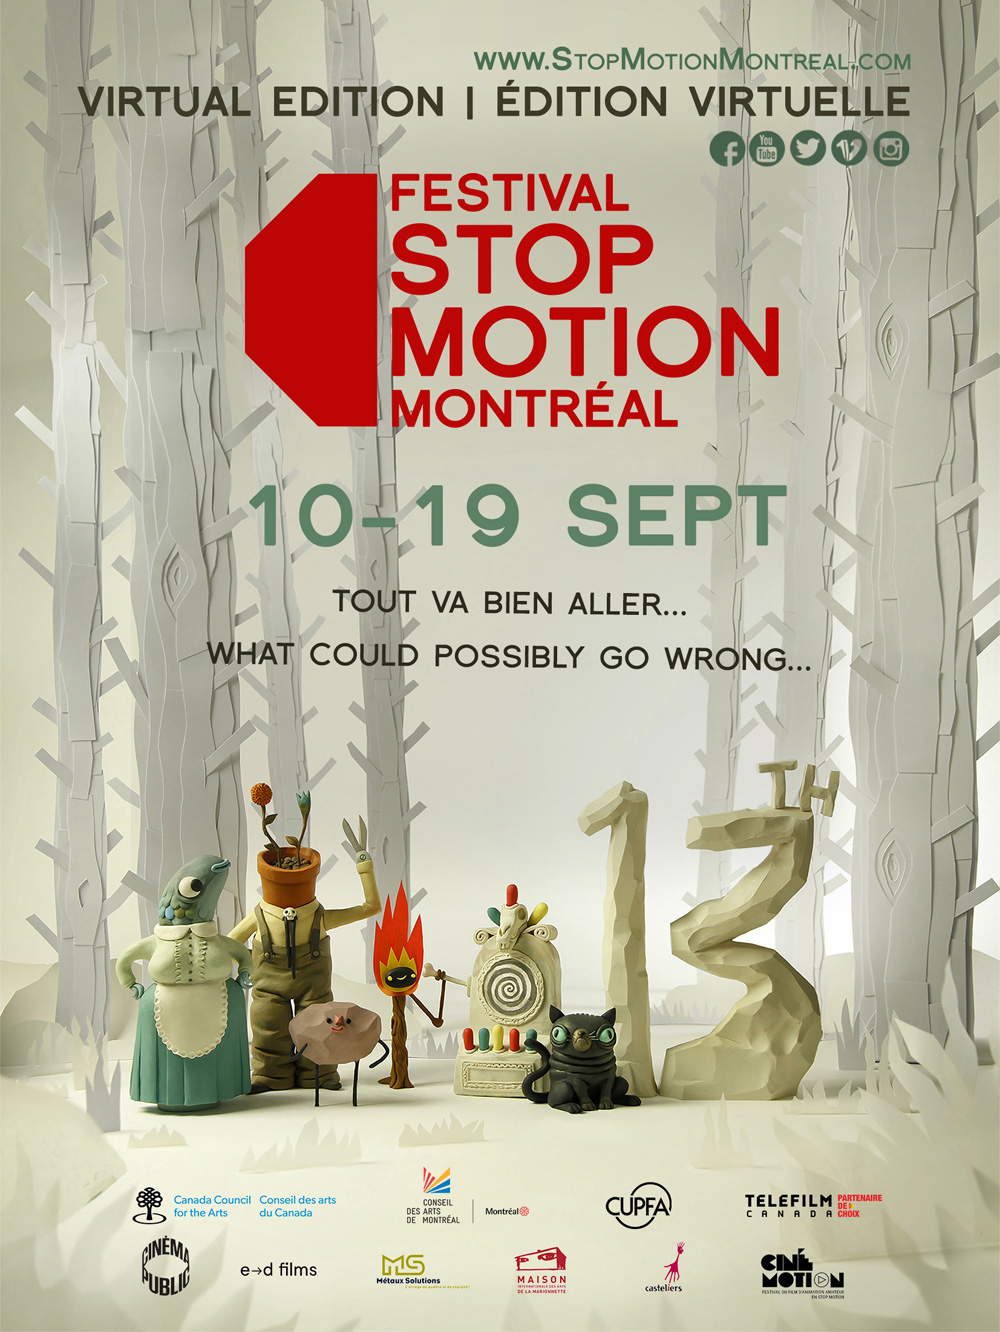 13th Festival Stop Motion Montréal © Design, illustration and photography by Gianluca Maruotti